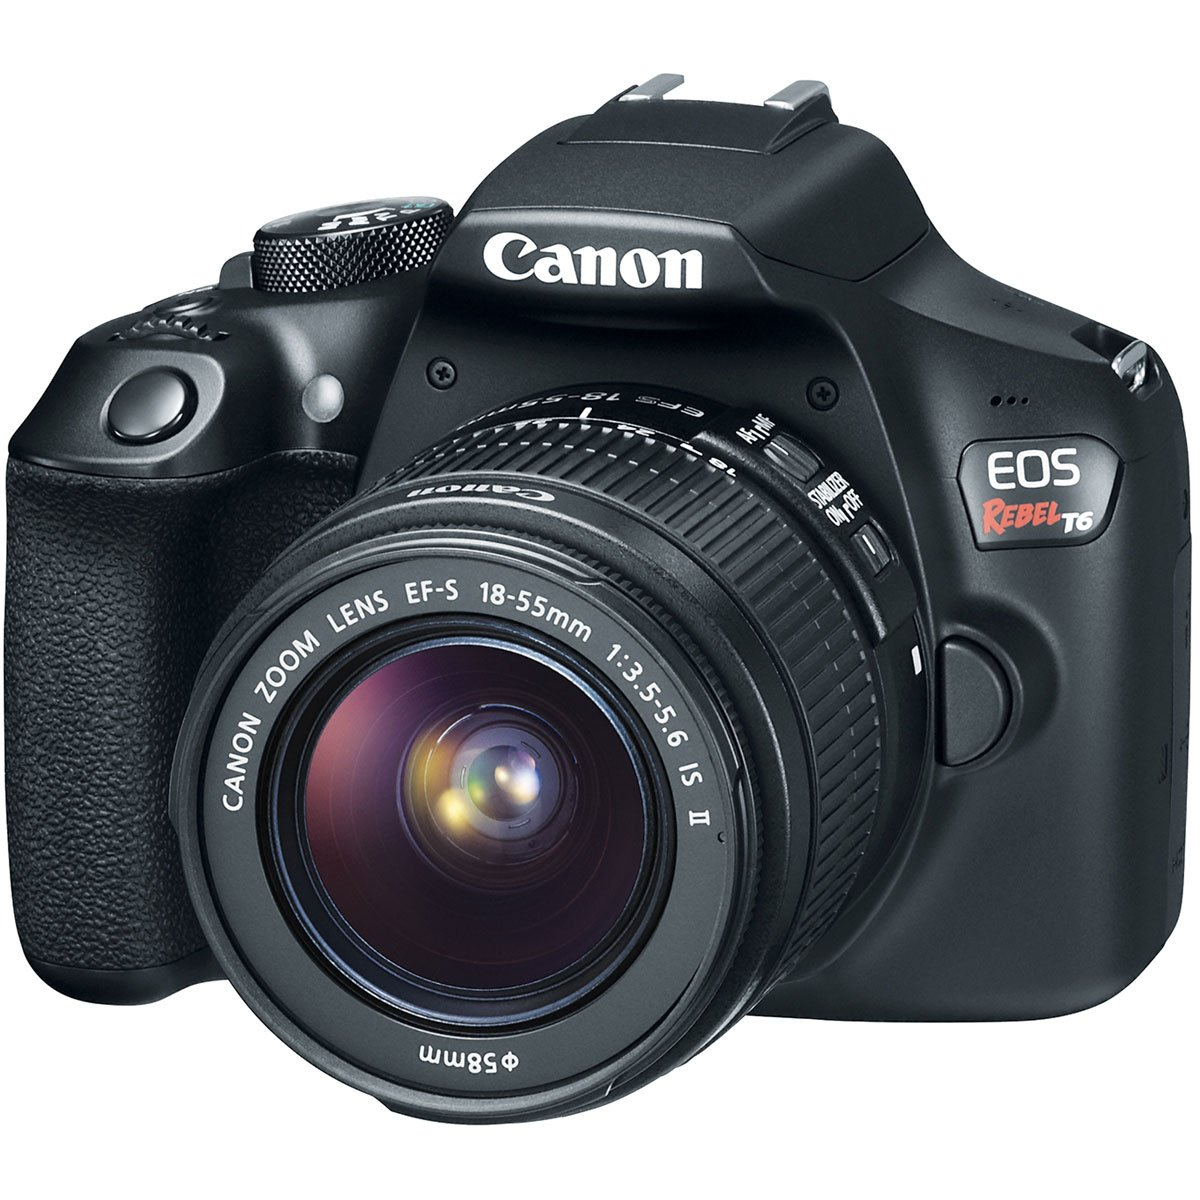 CANON EOSRebel T6 DSLR Camera